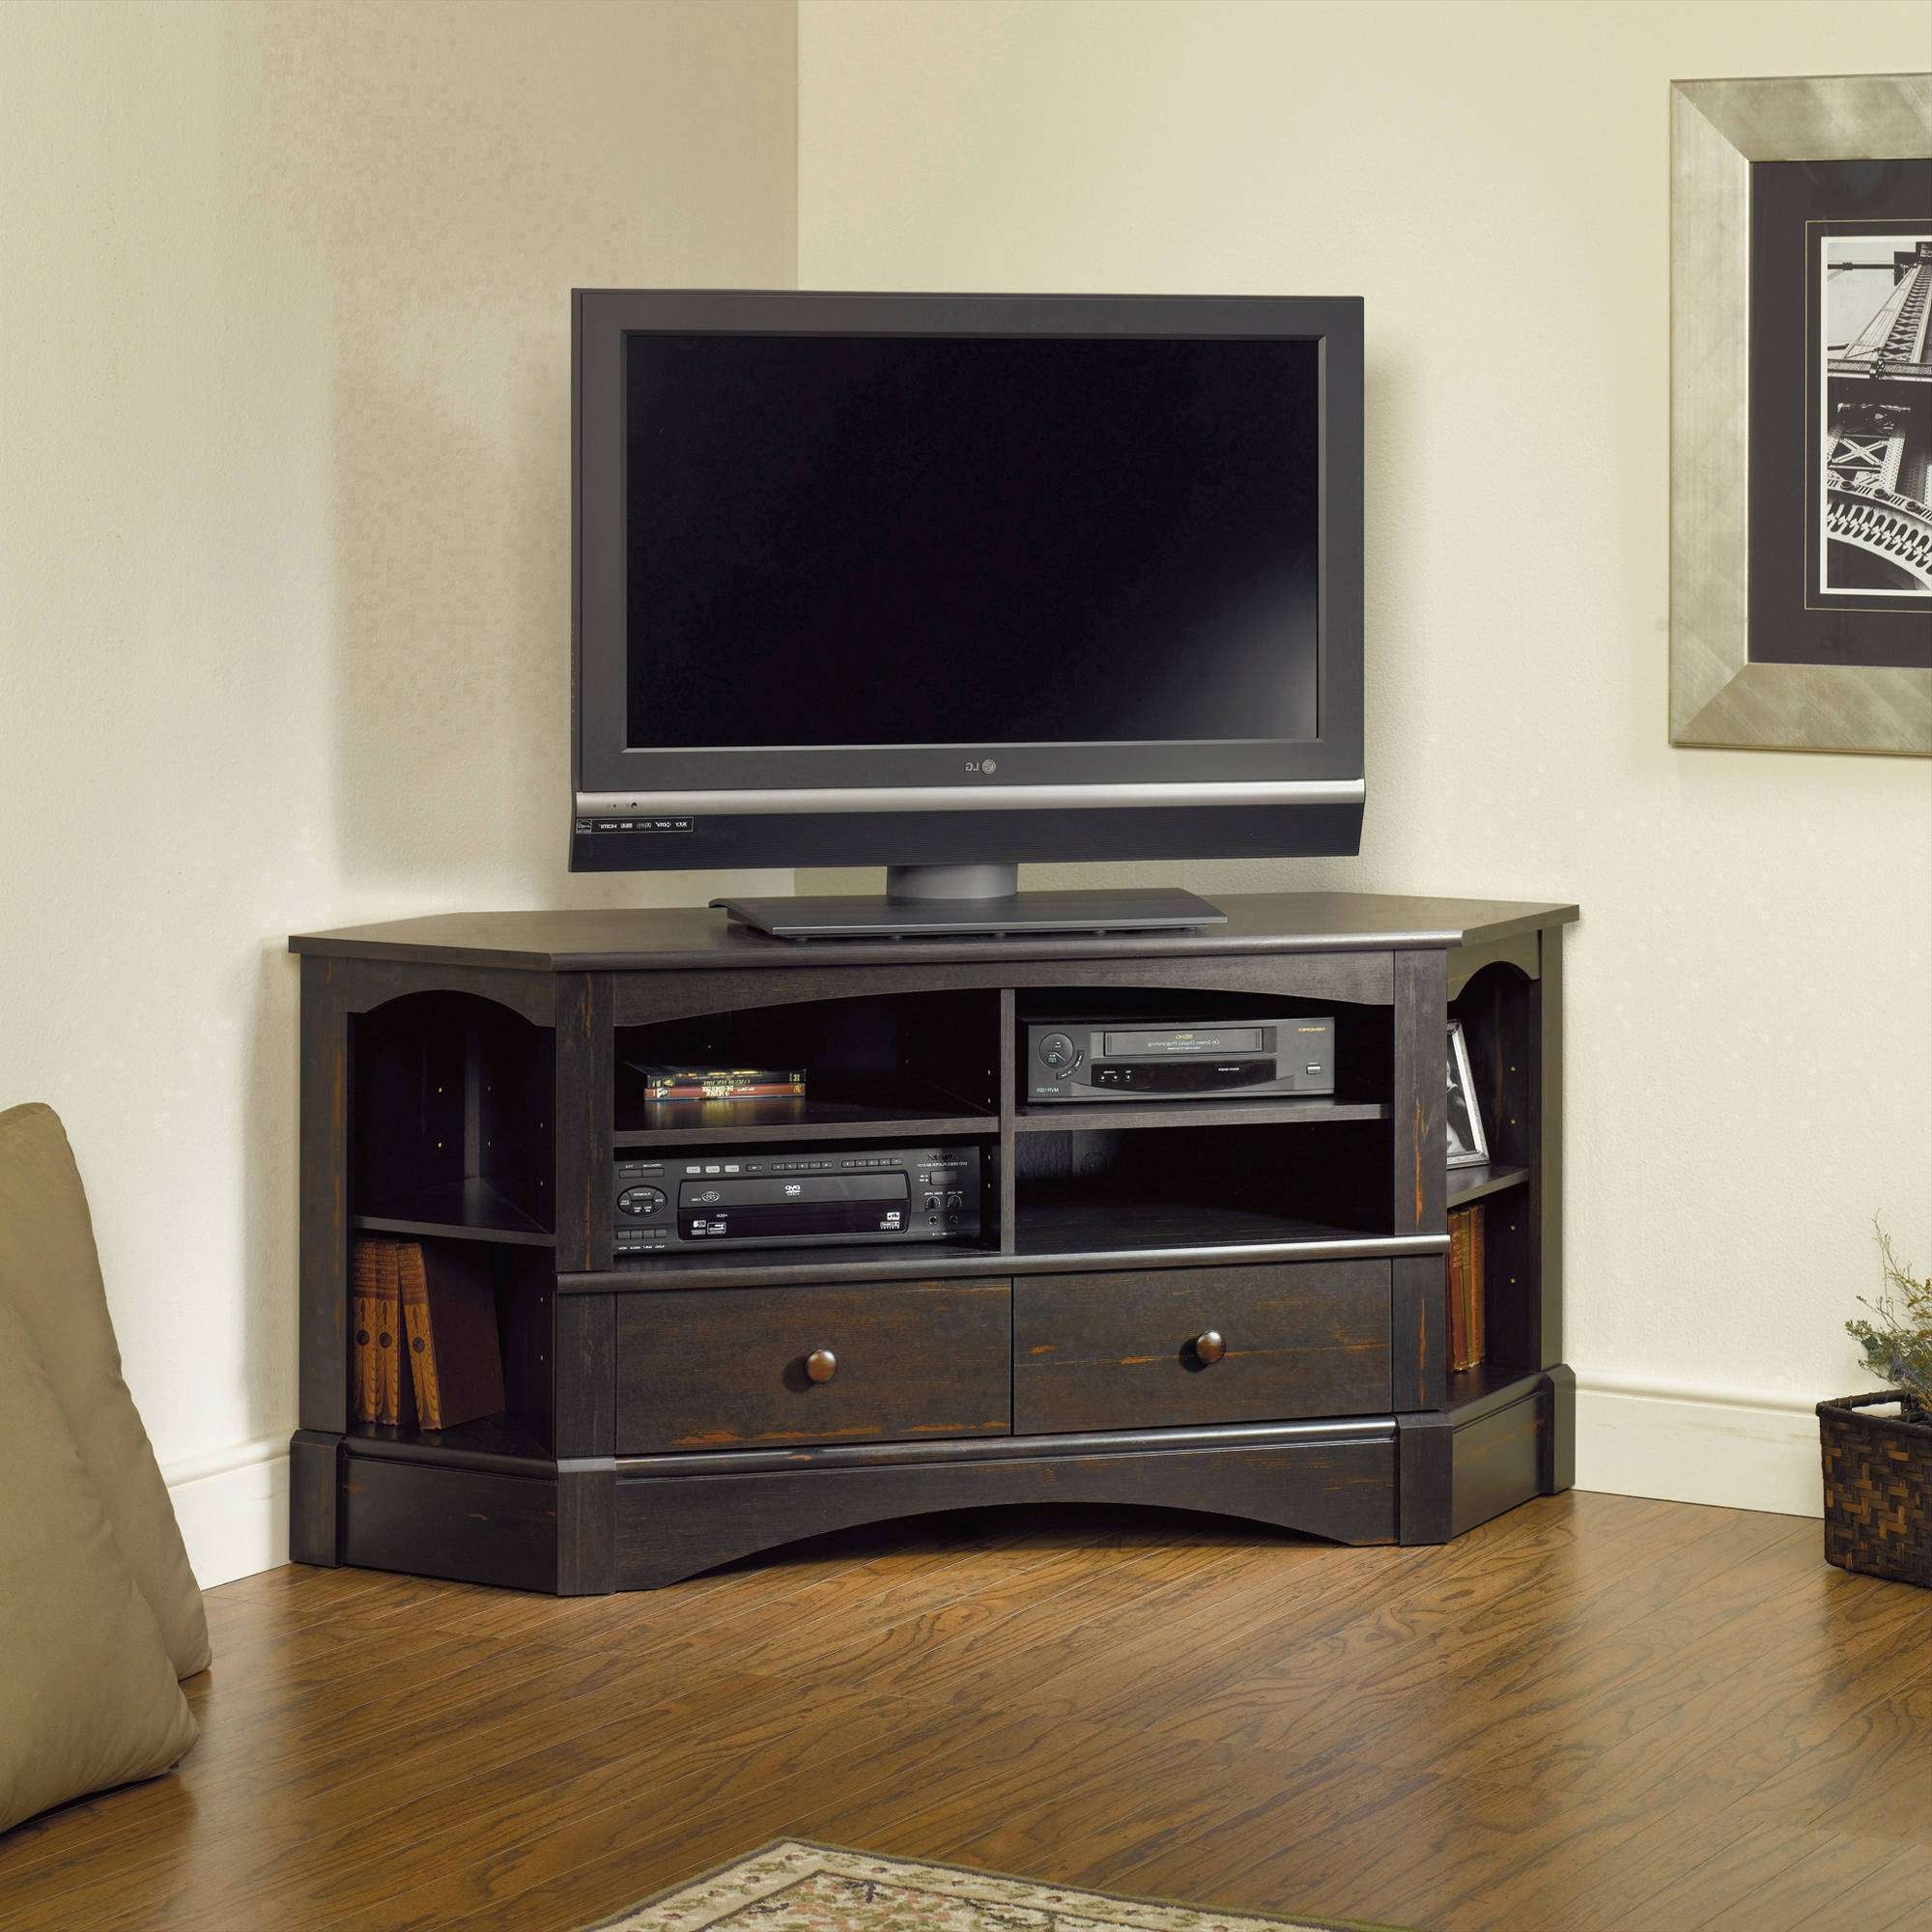 Desertsageyoga : Corner Tv Stands For Flat Screen (View 12 of 20)